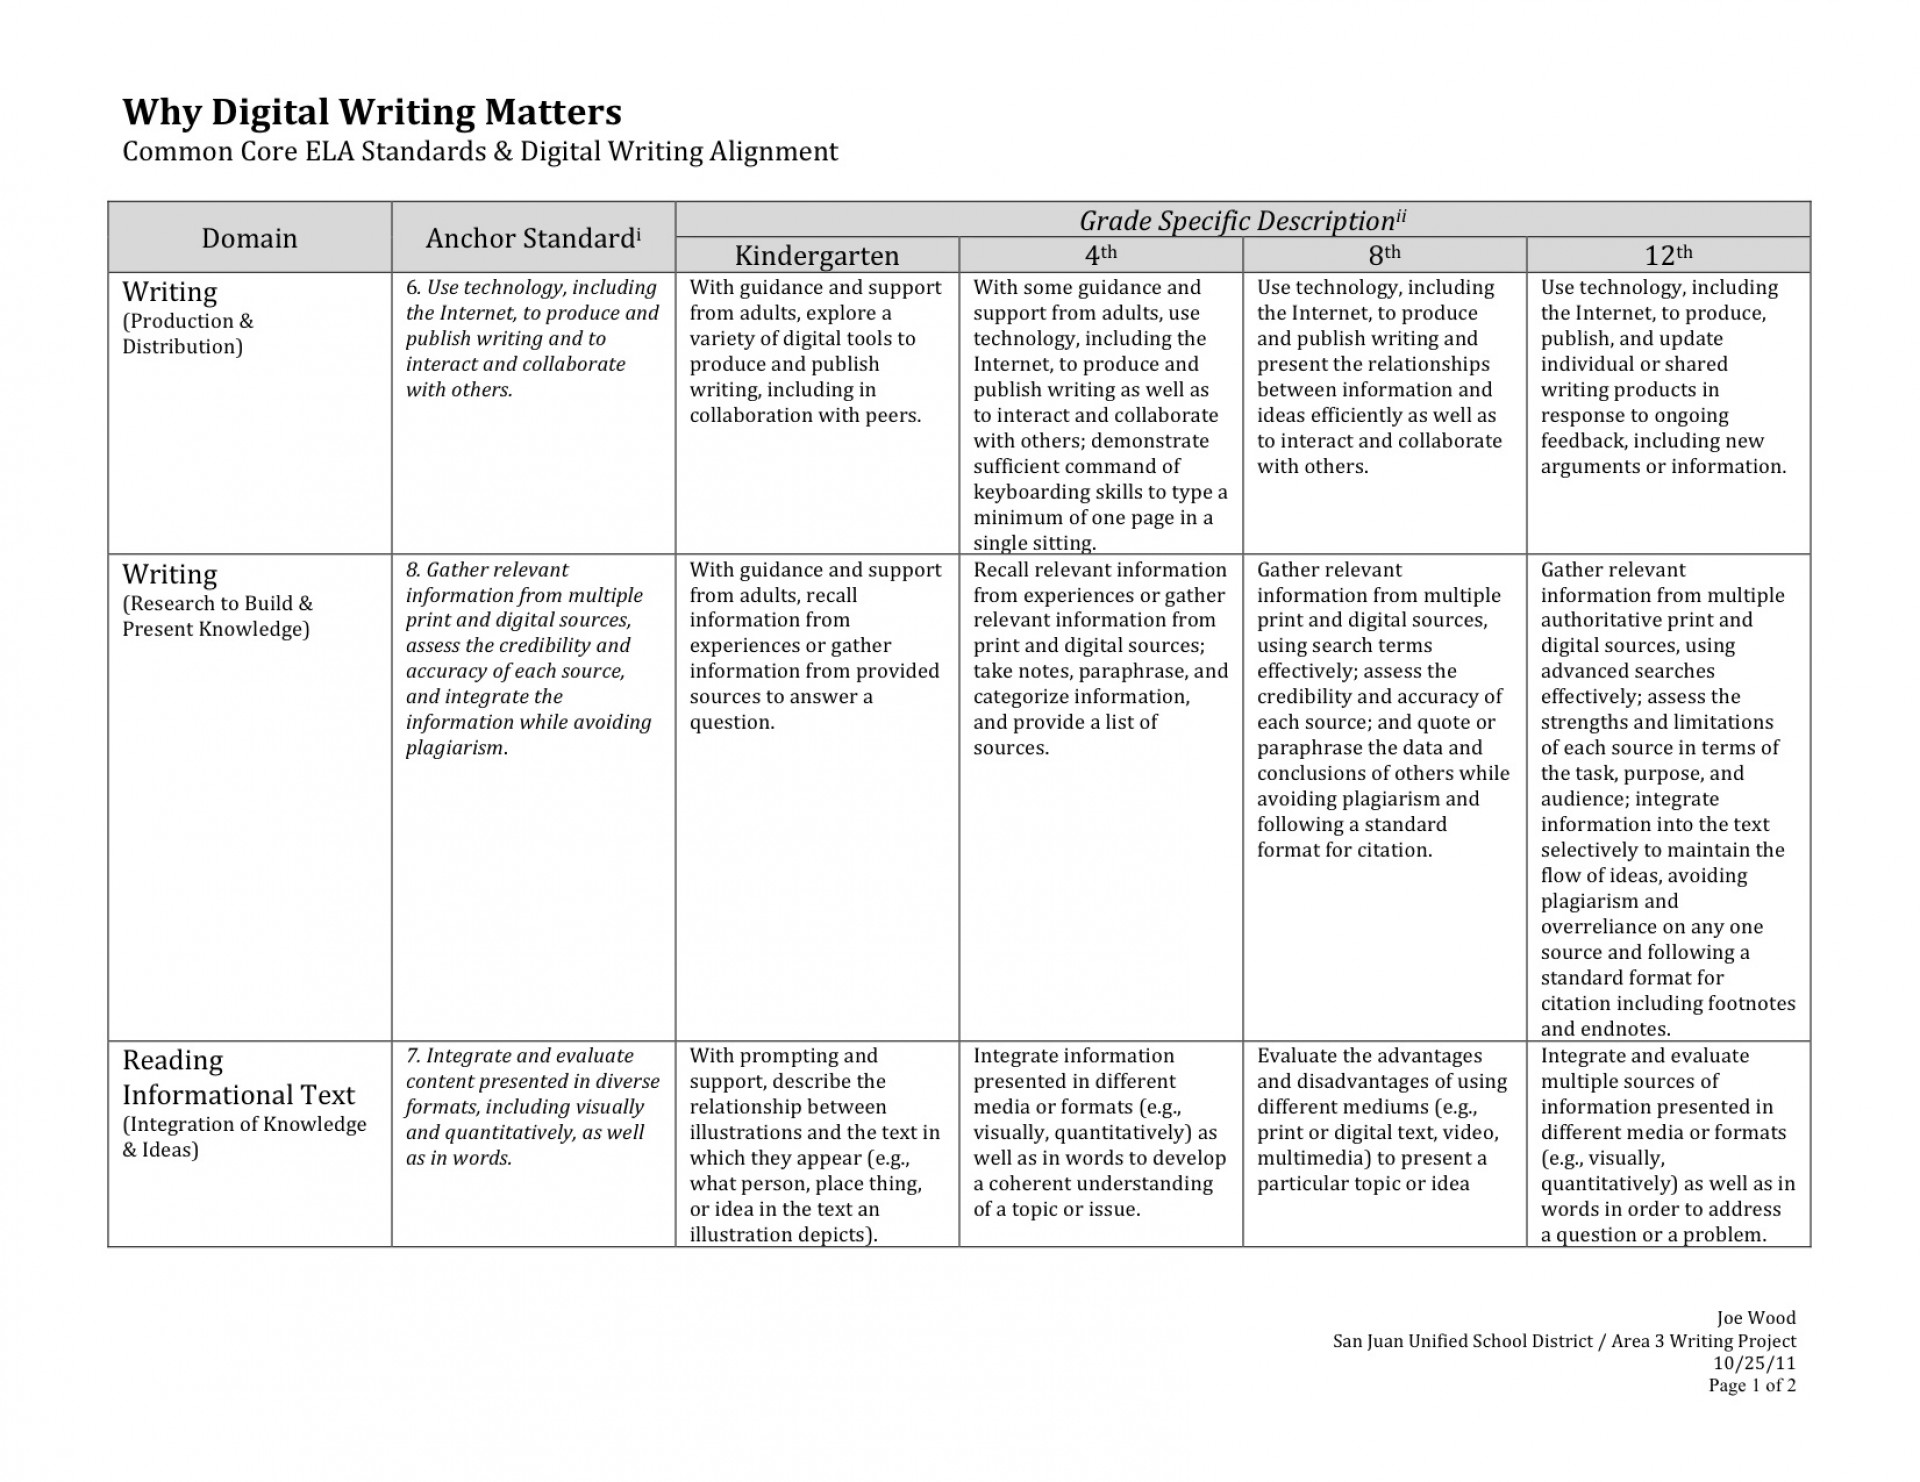 003 Research Paper Why Digital Writing Matters According To The Common Core Ela Standards1 Rubrics High Beautiful School Rubric English Argumentative 1920